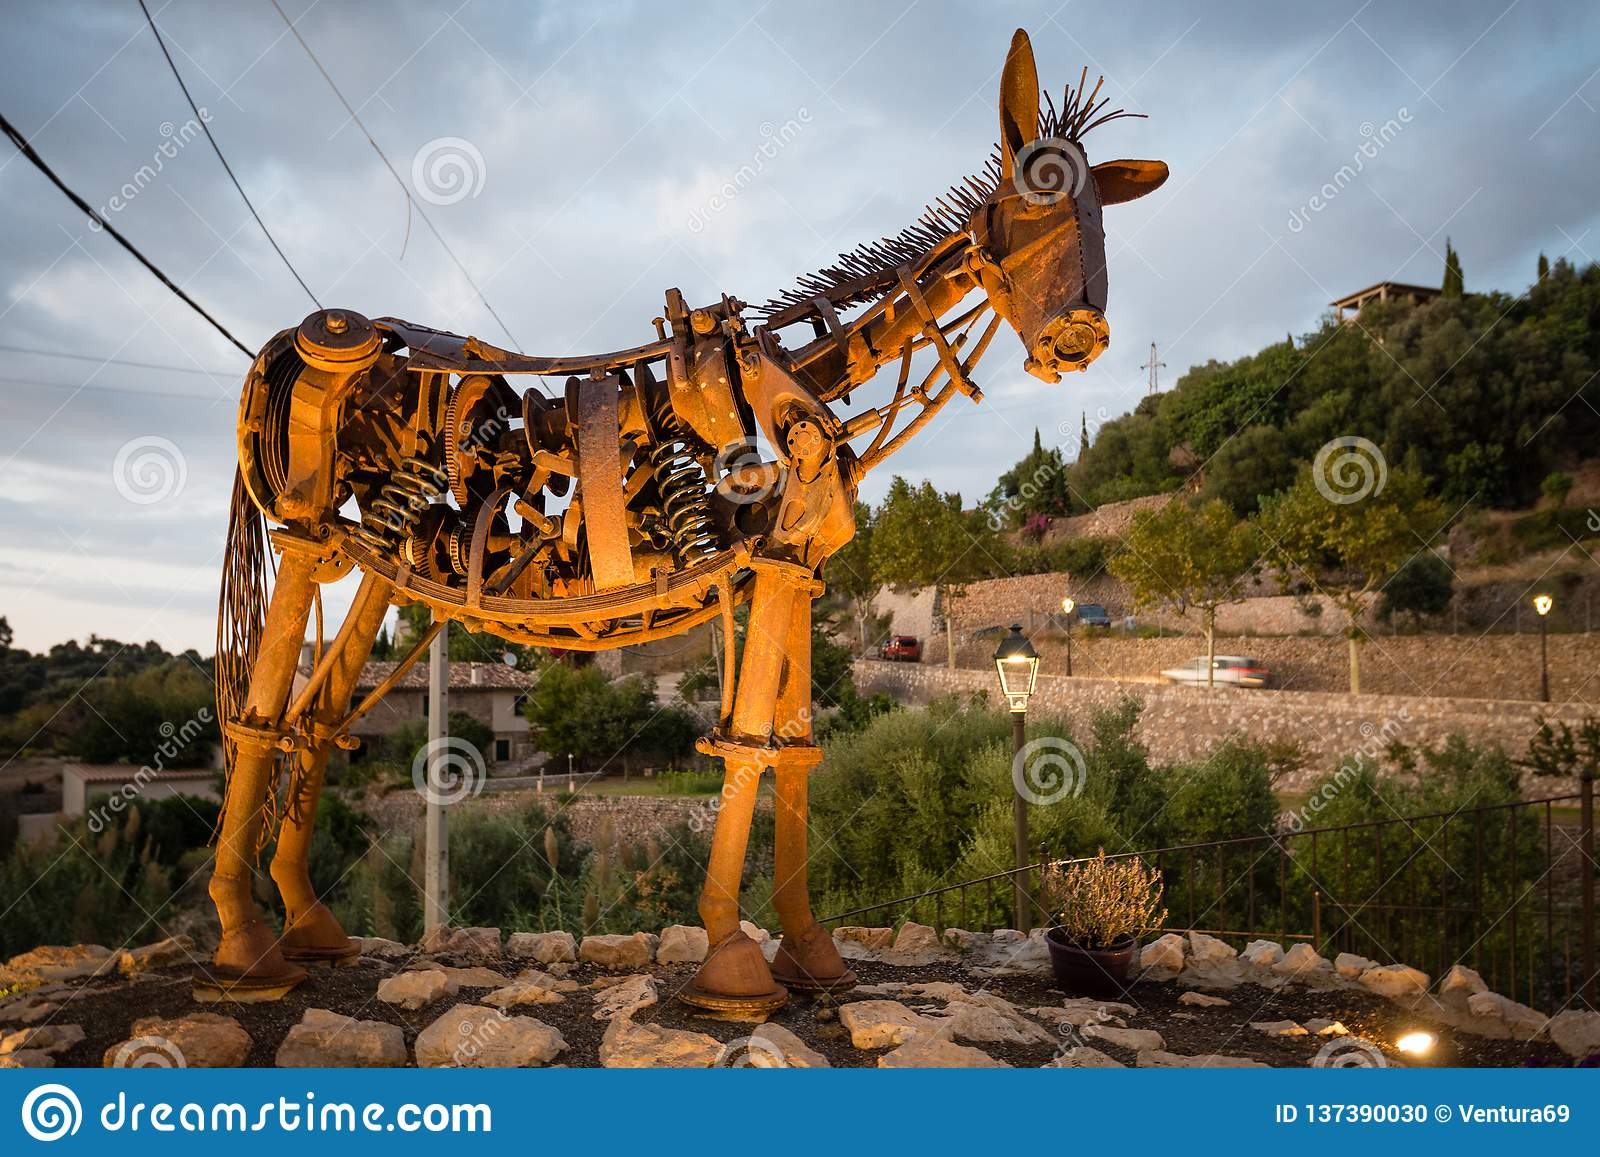 Horse Metal Scrap Photos Free Royalty Free Stock Photos From Dreamstime